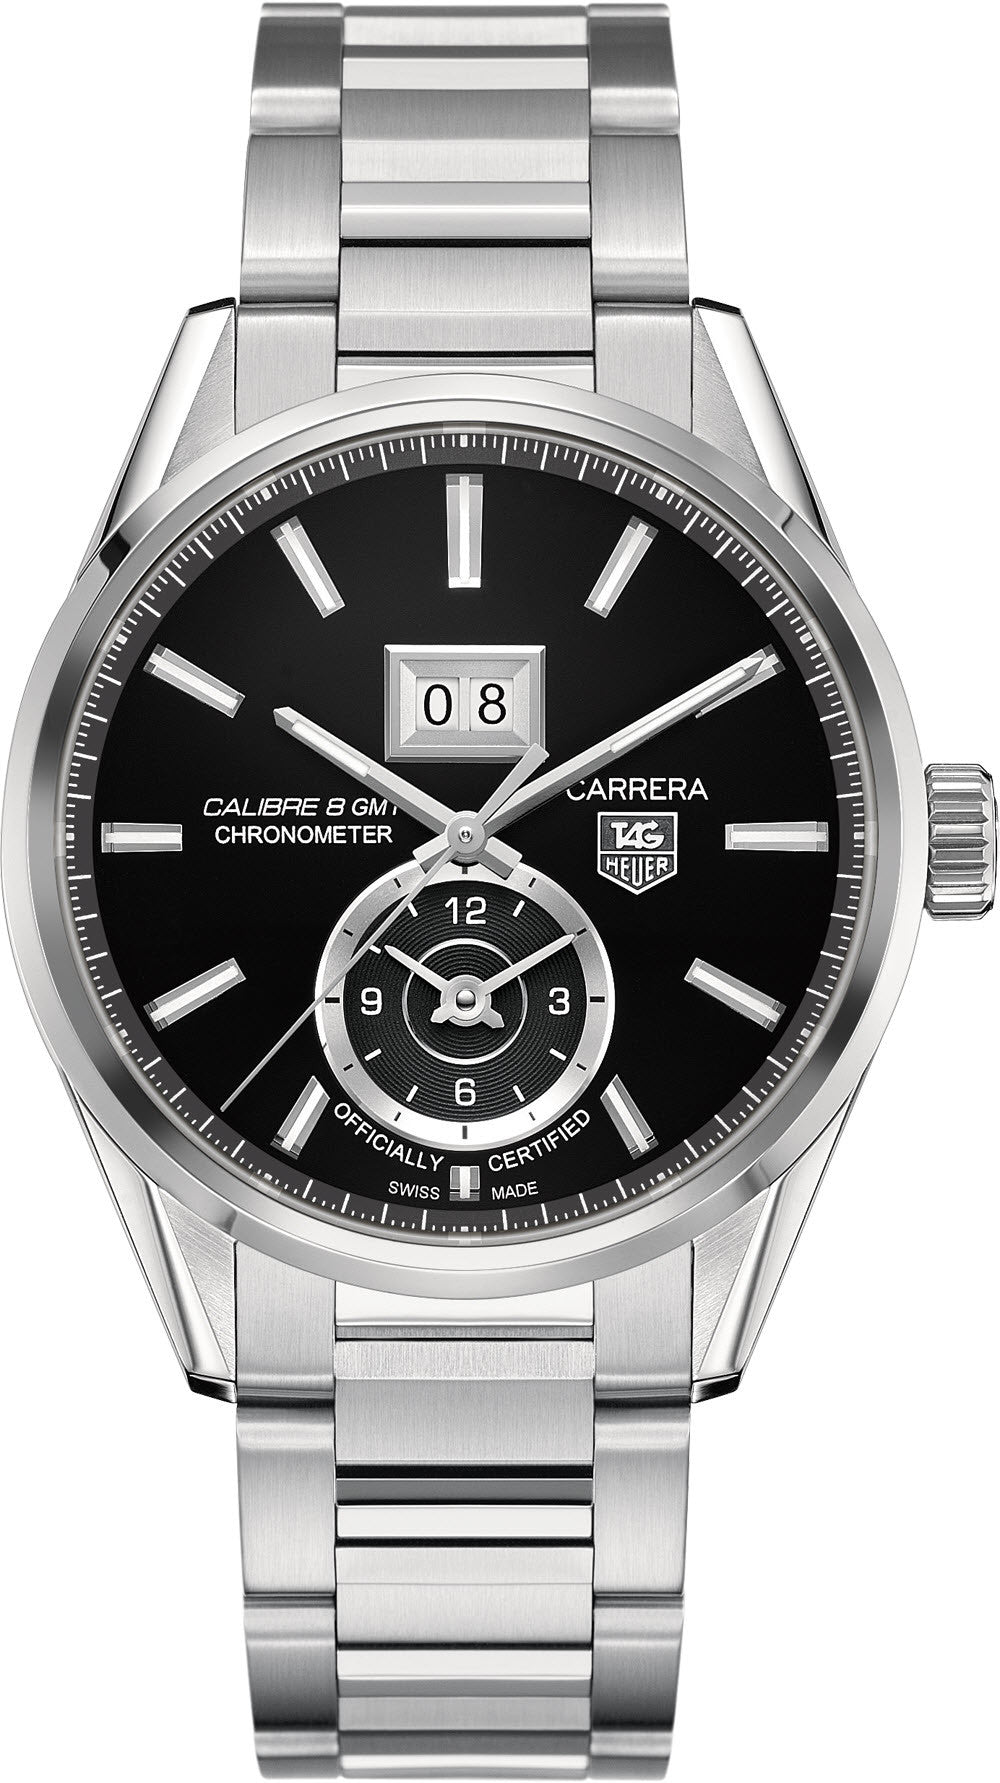 TAG Heuer Watch Carrera Grande Date GMT Calibre 8